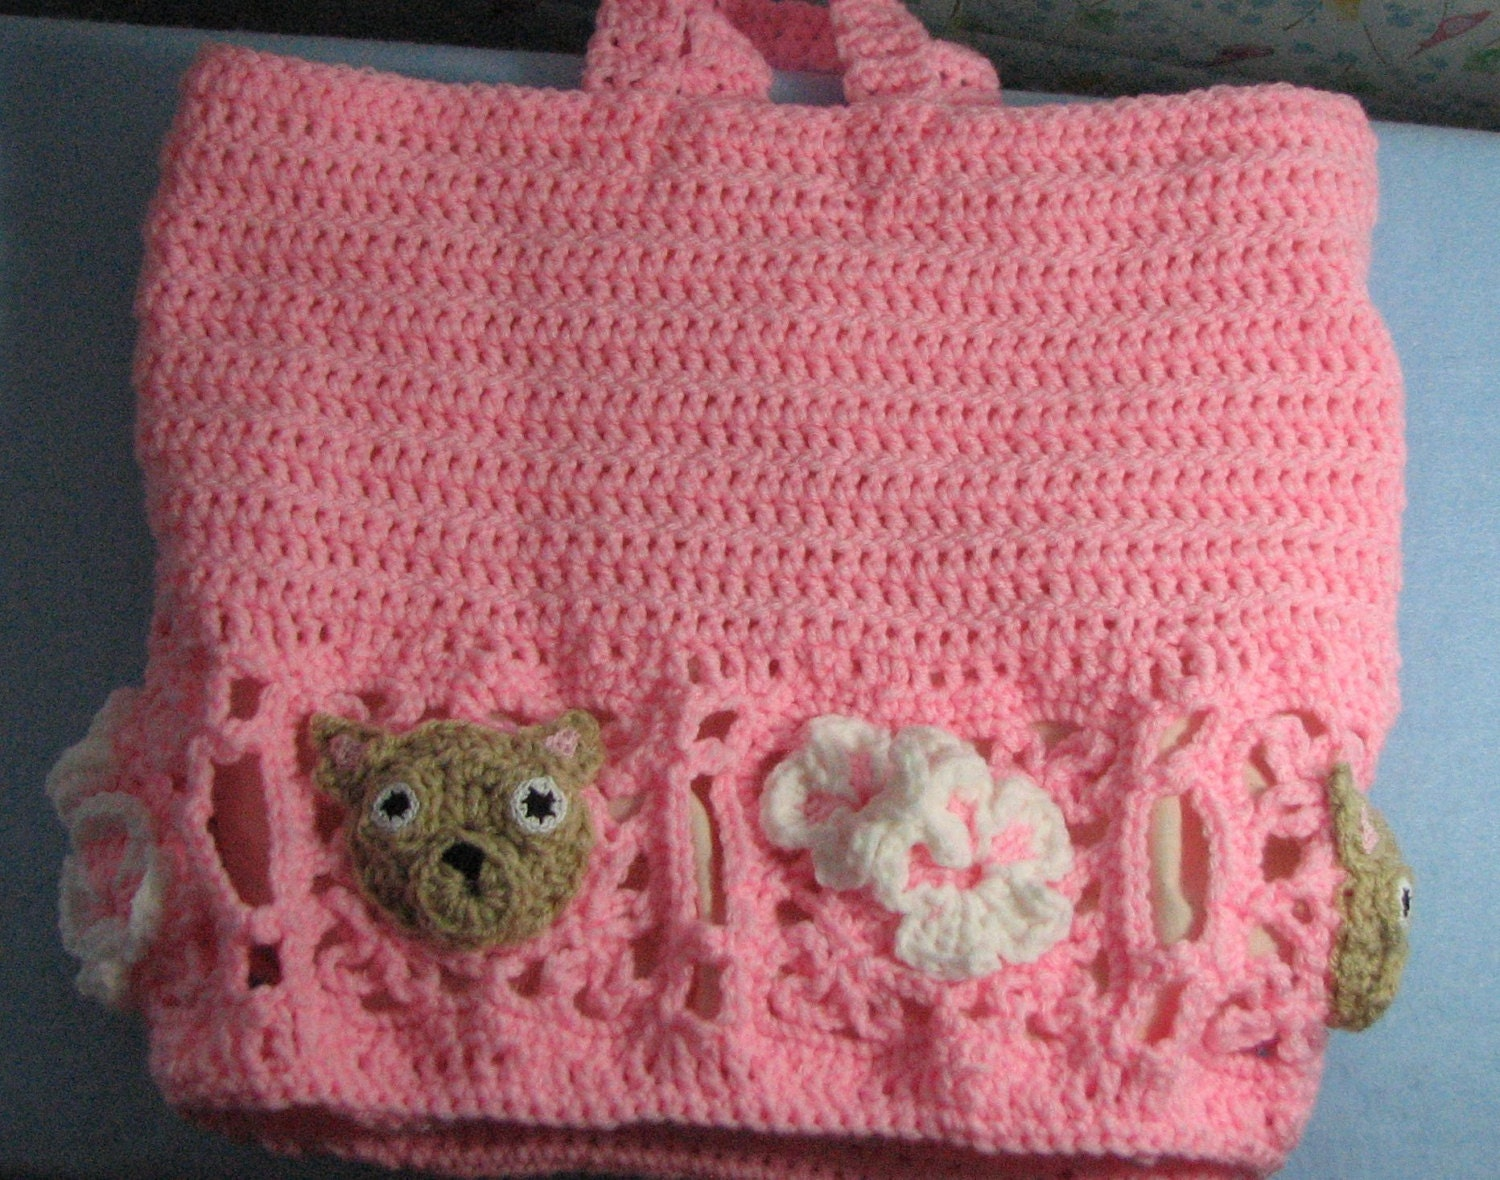 Crochet Pattern Lace and Flowers Chihuahua Tote Crochet